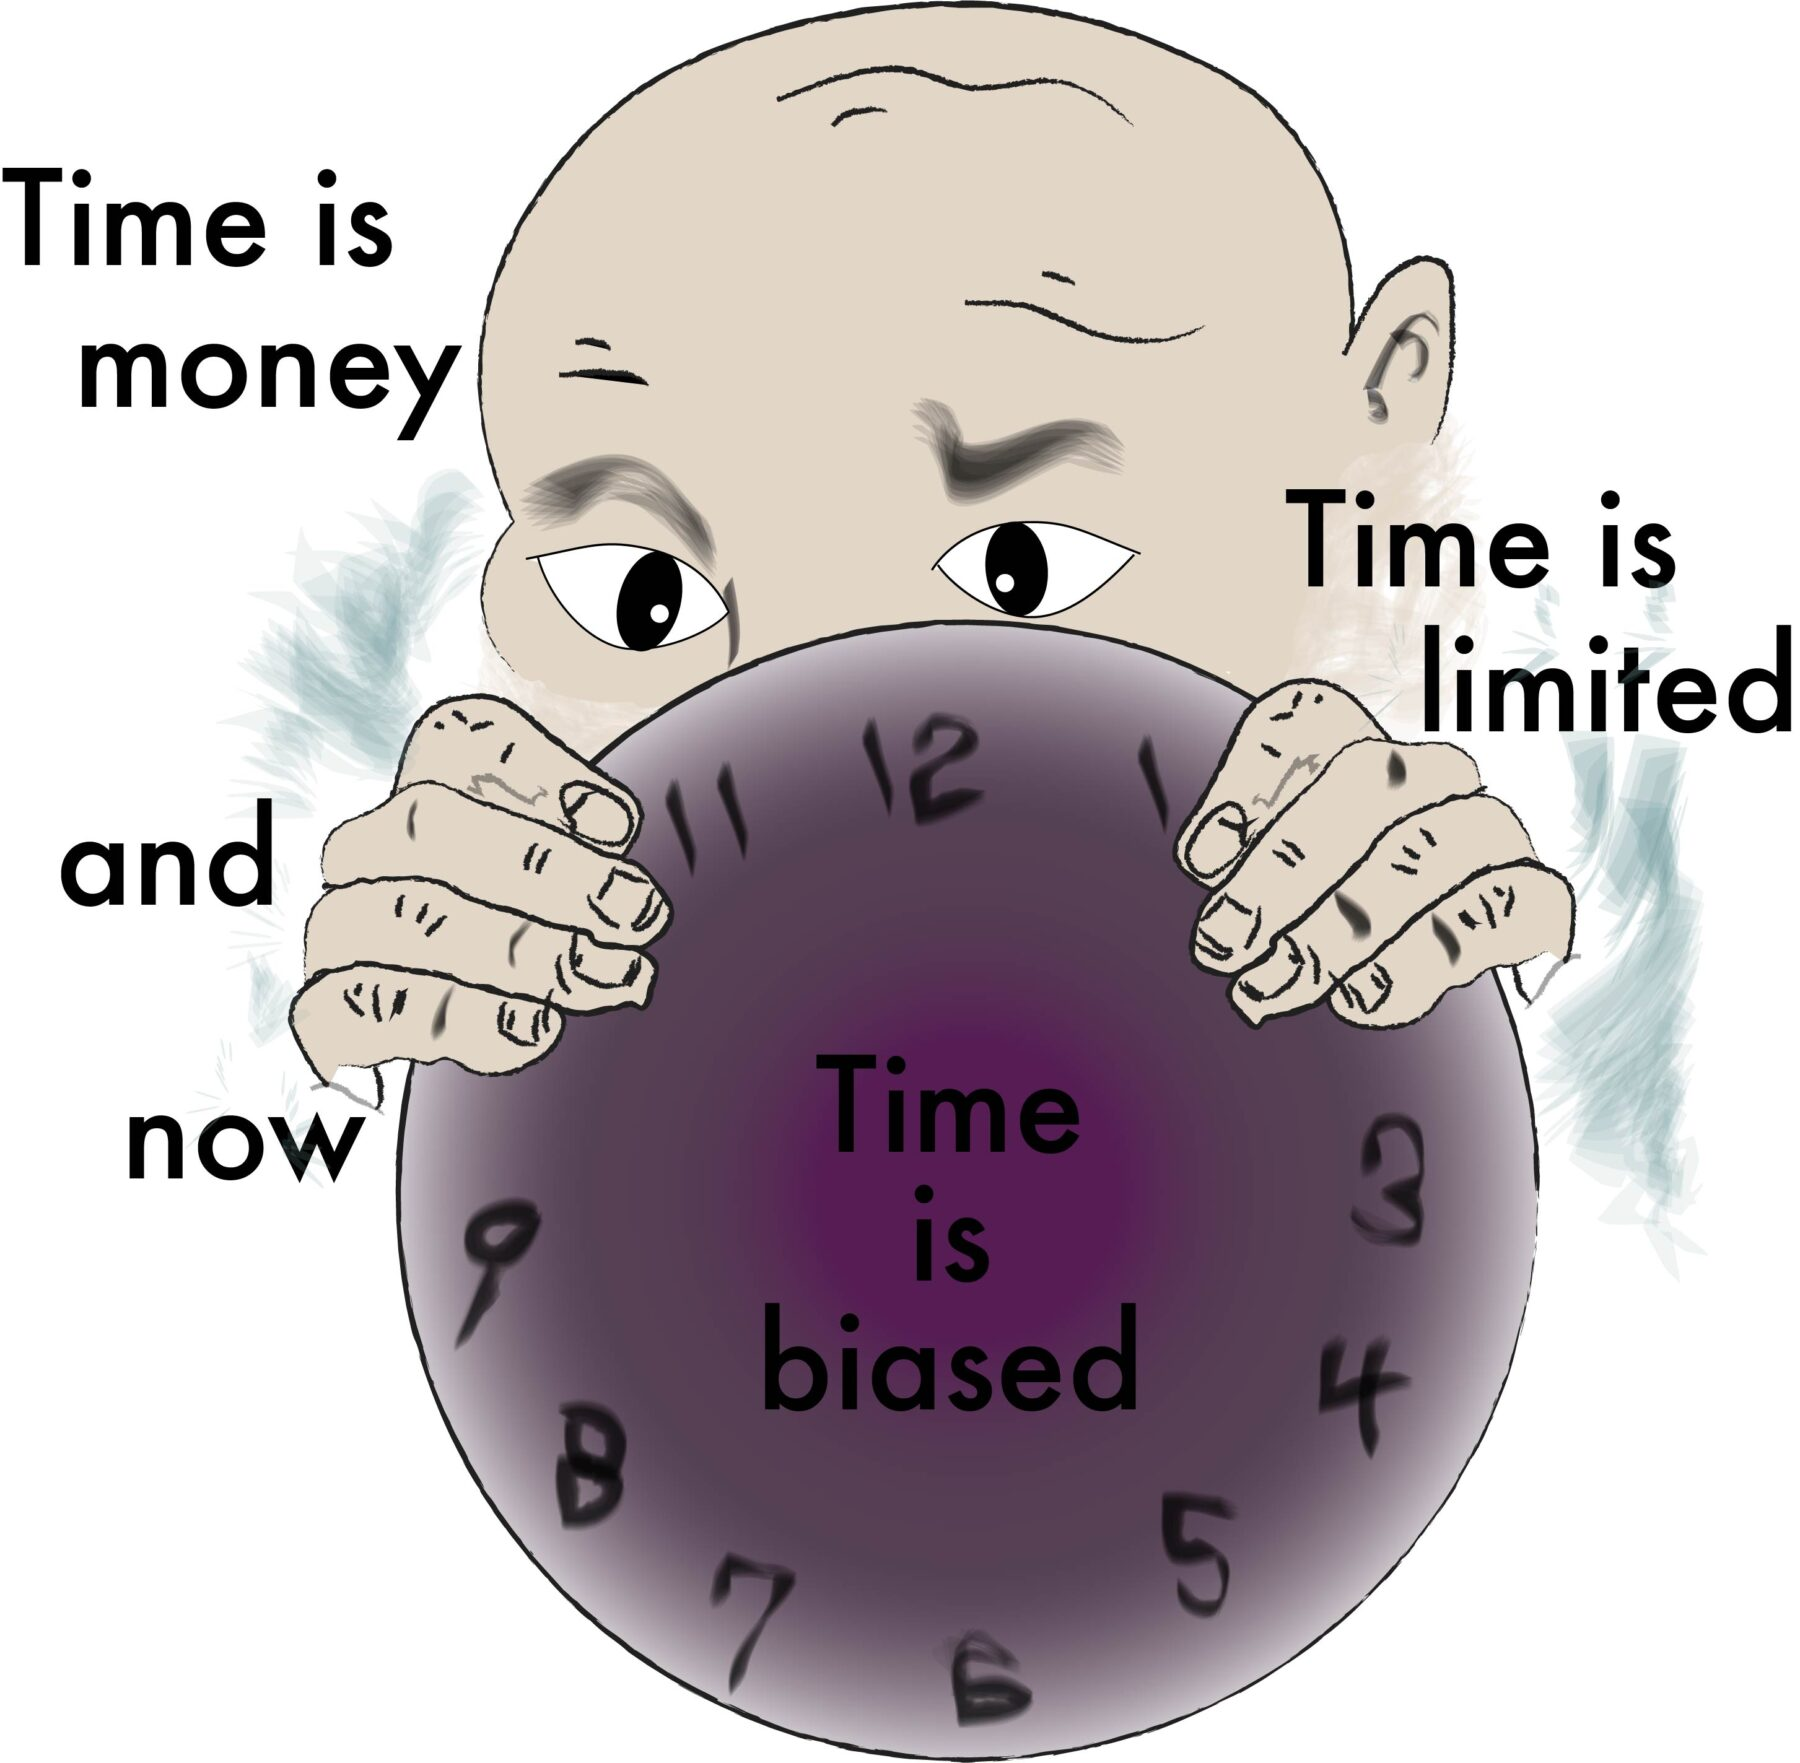 Time is Money, Time is Limited and Time is Bias